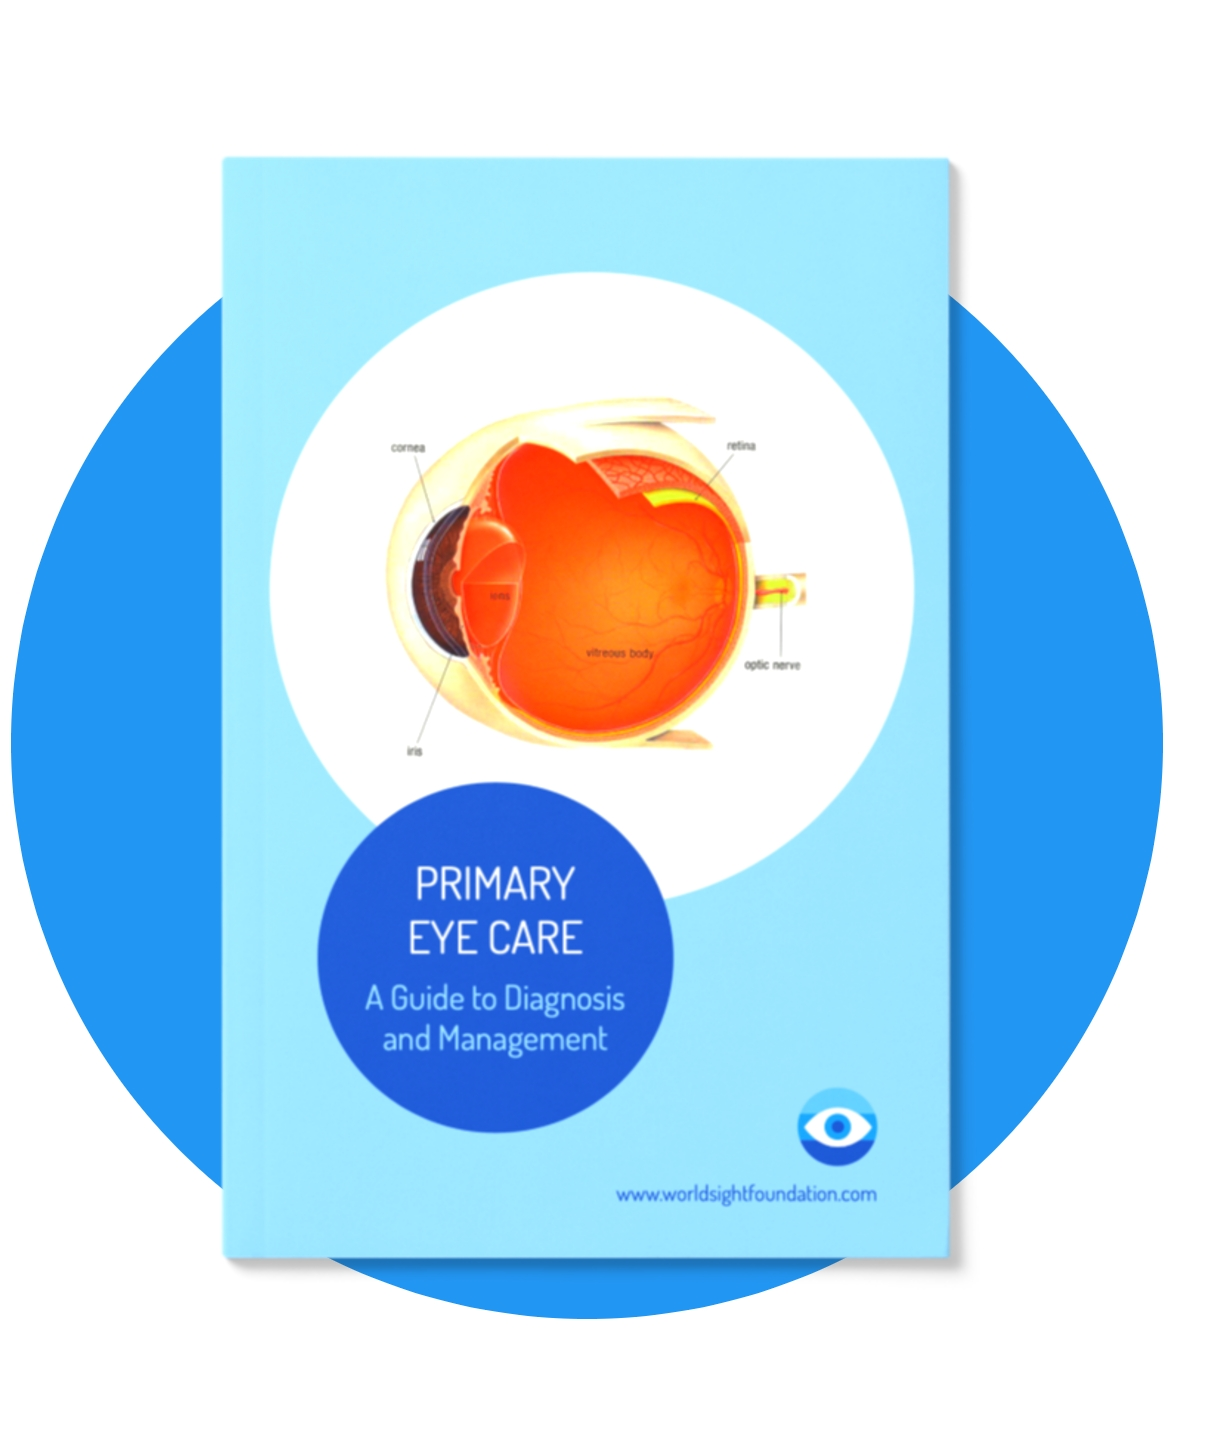 PRIMARY EYE CARE - A guide to diagnosis and management